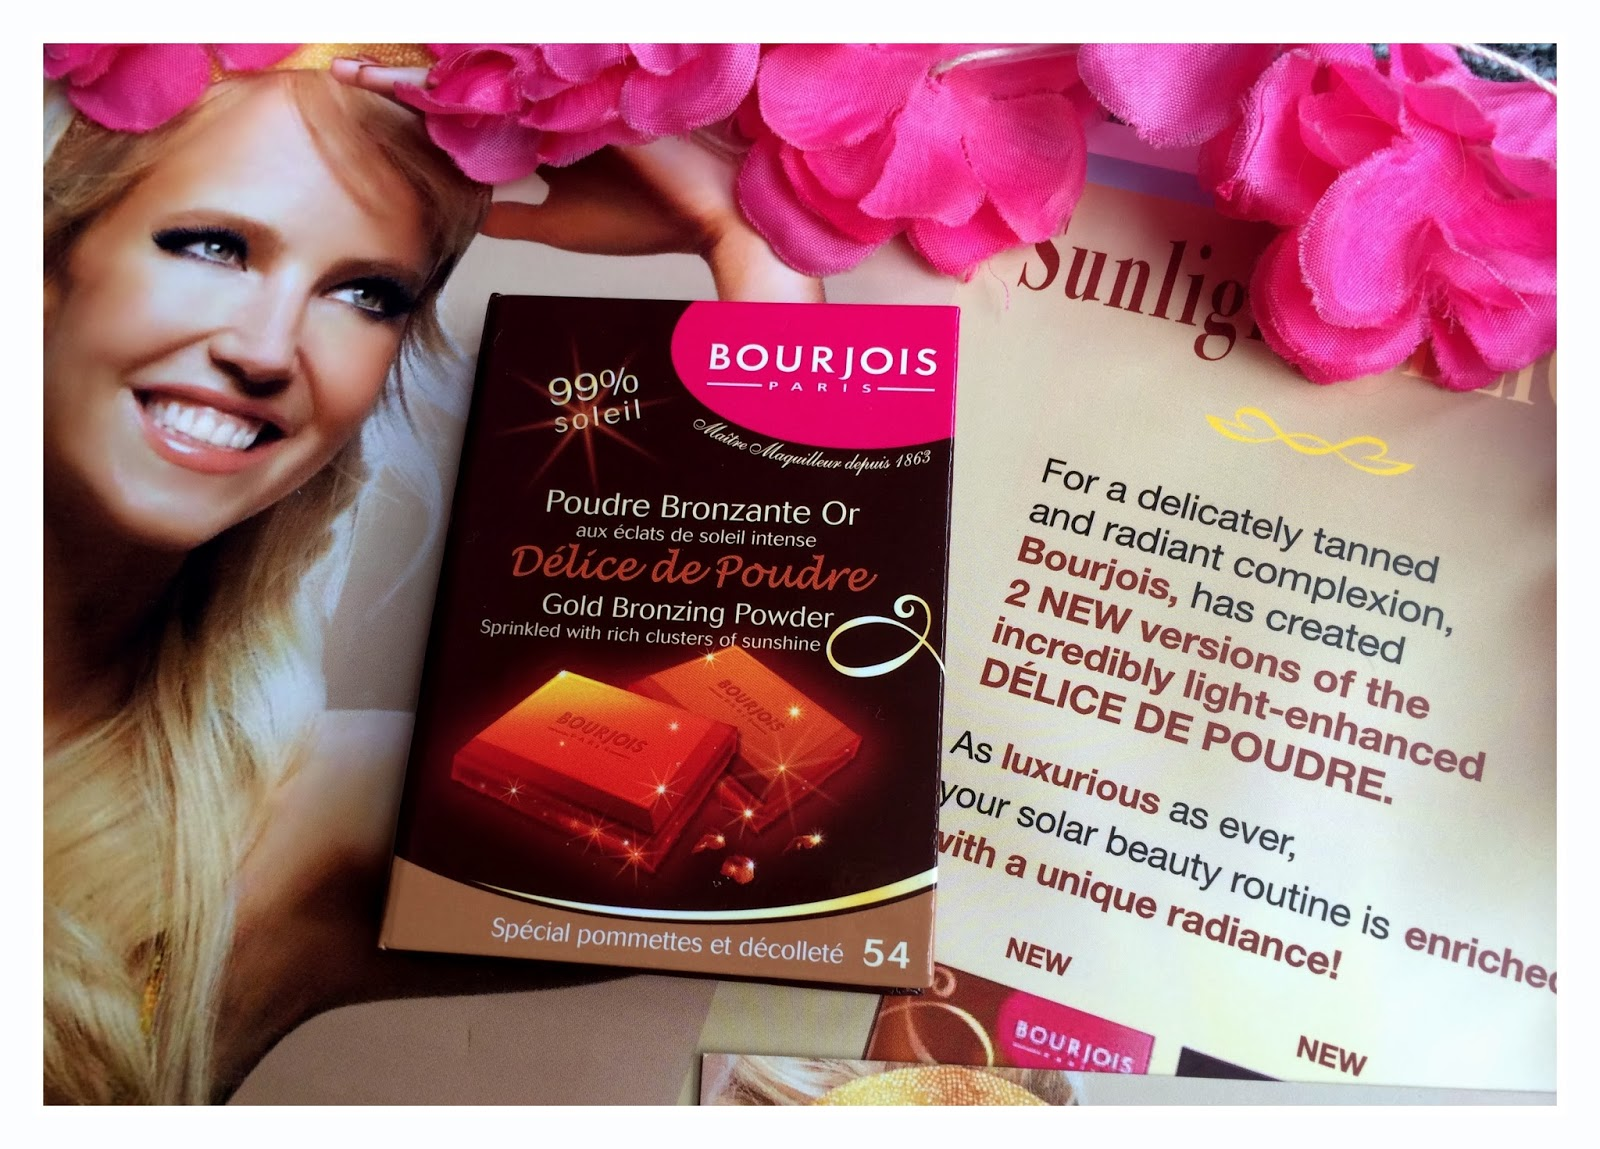 bourjois-delice-de-poudre-gold-bronzing-powder-review